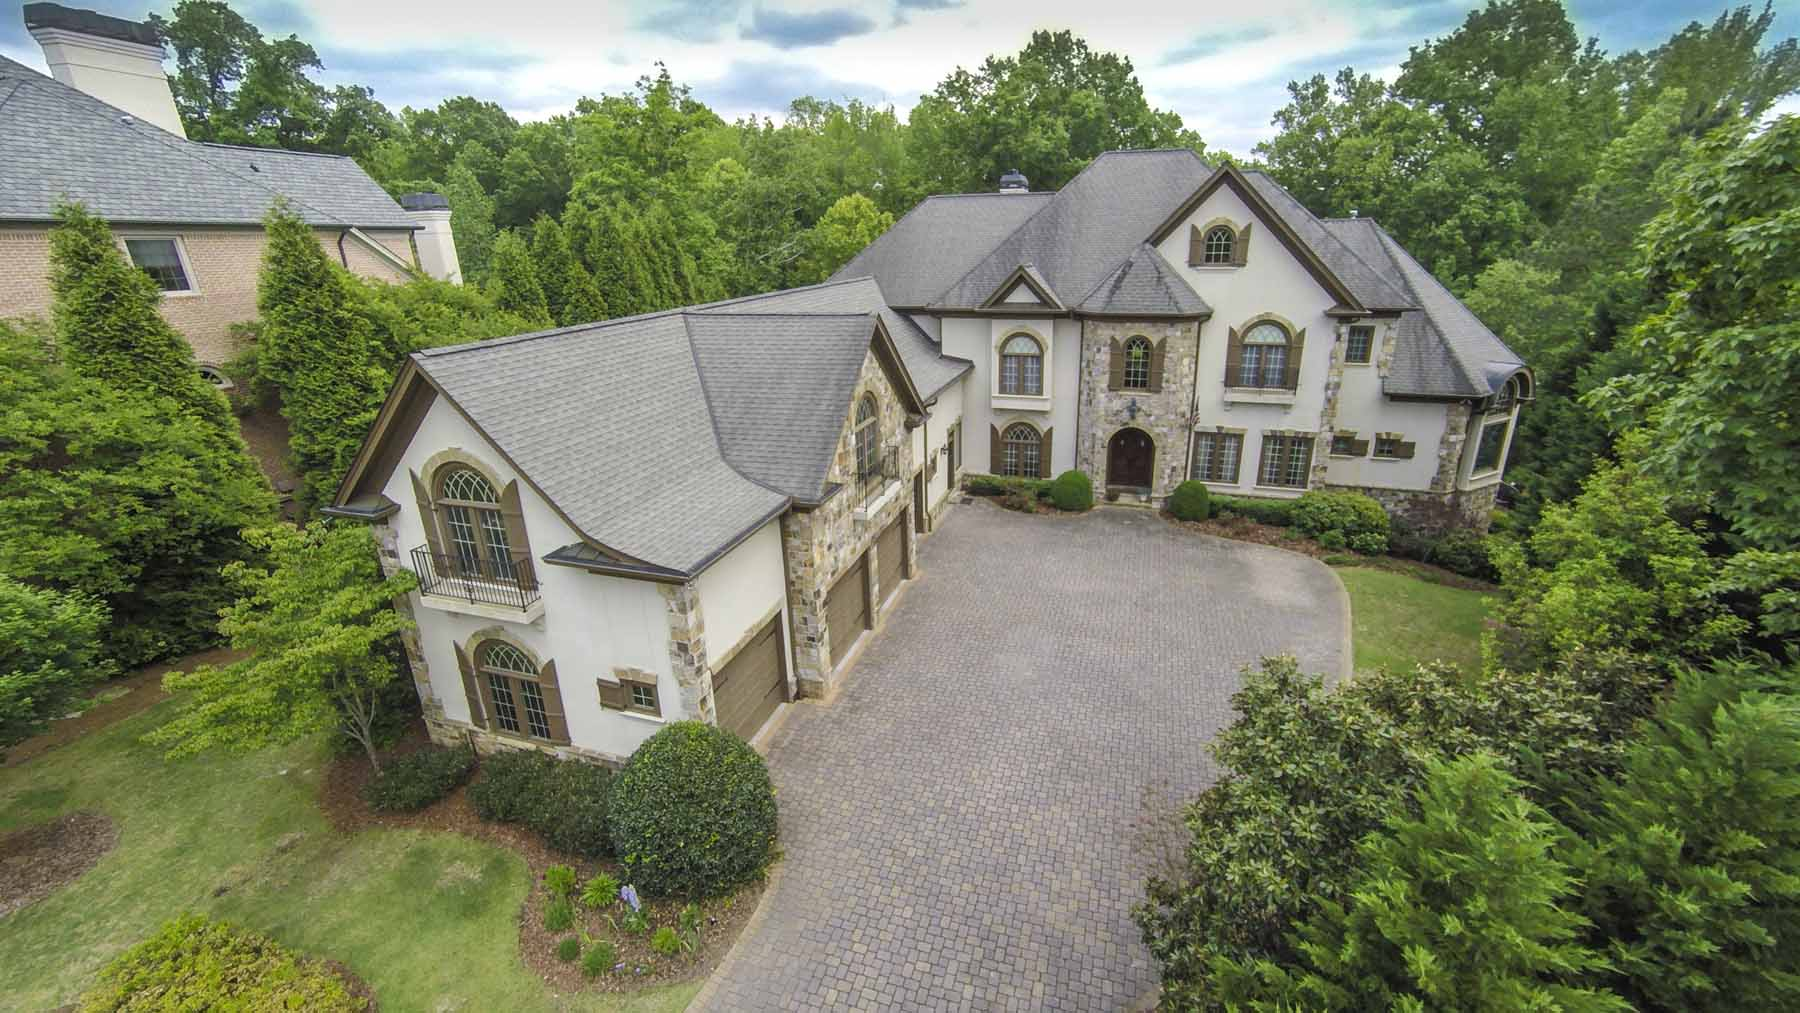 Vivienda unifamiliar por un Venta en Stunning Home Meets Modern Updates on the Sparkling Chattahoochee River 500 Covington Cove Alpharetta, Georgia 30022 Estados Unidos